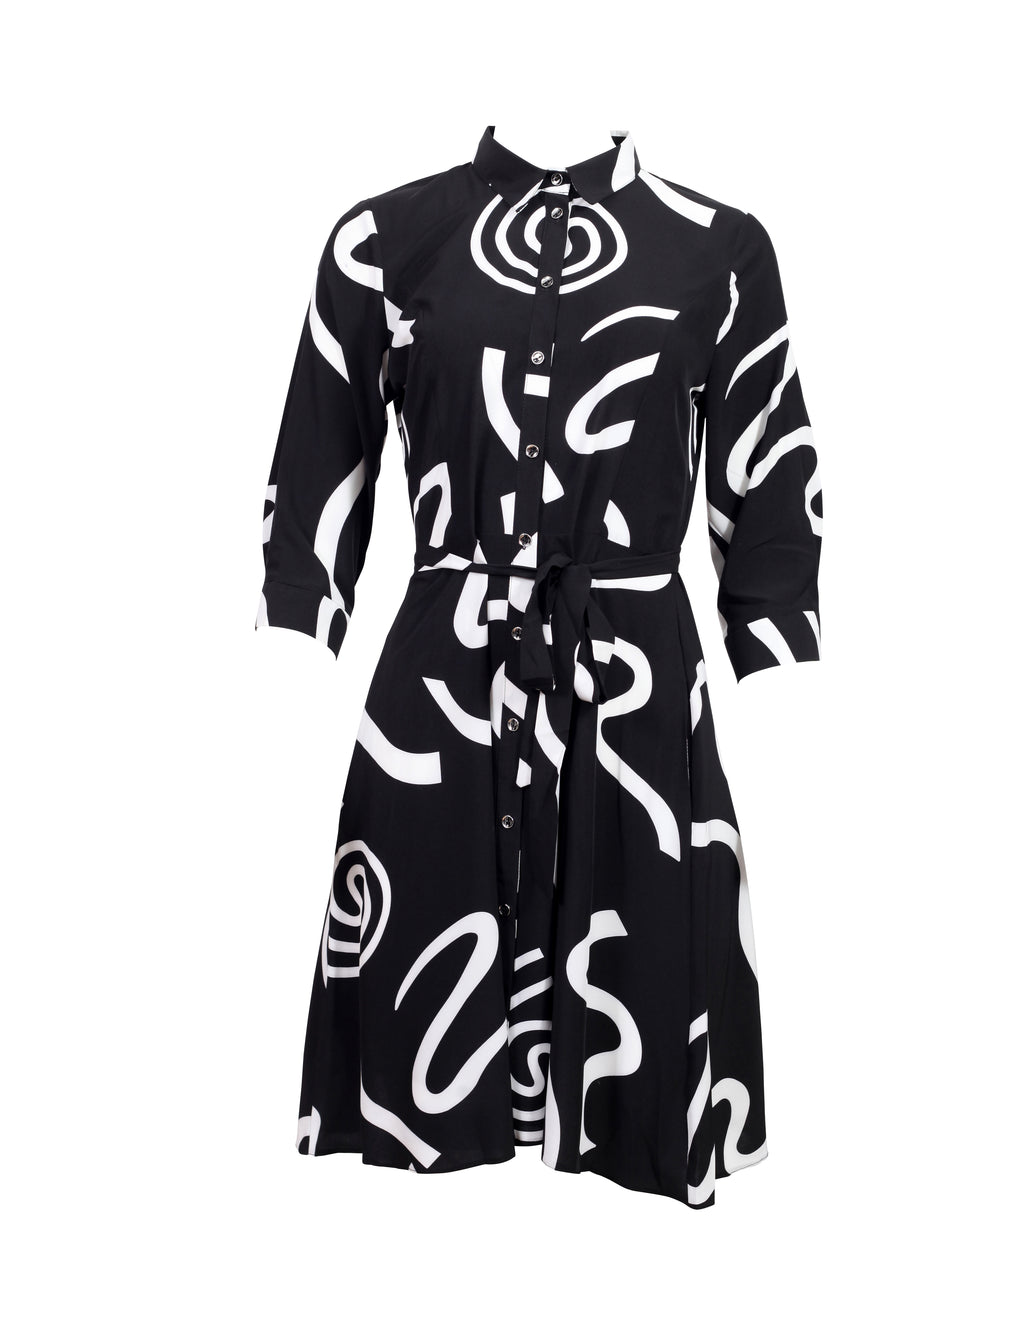 Front view of a Black Shirt Dress with white swirls